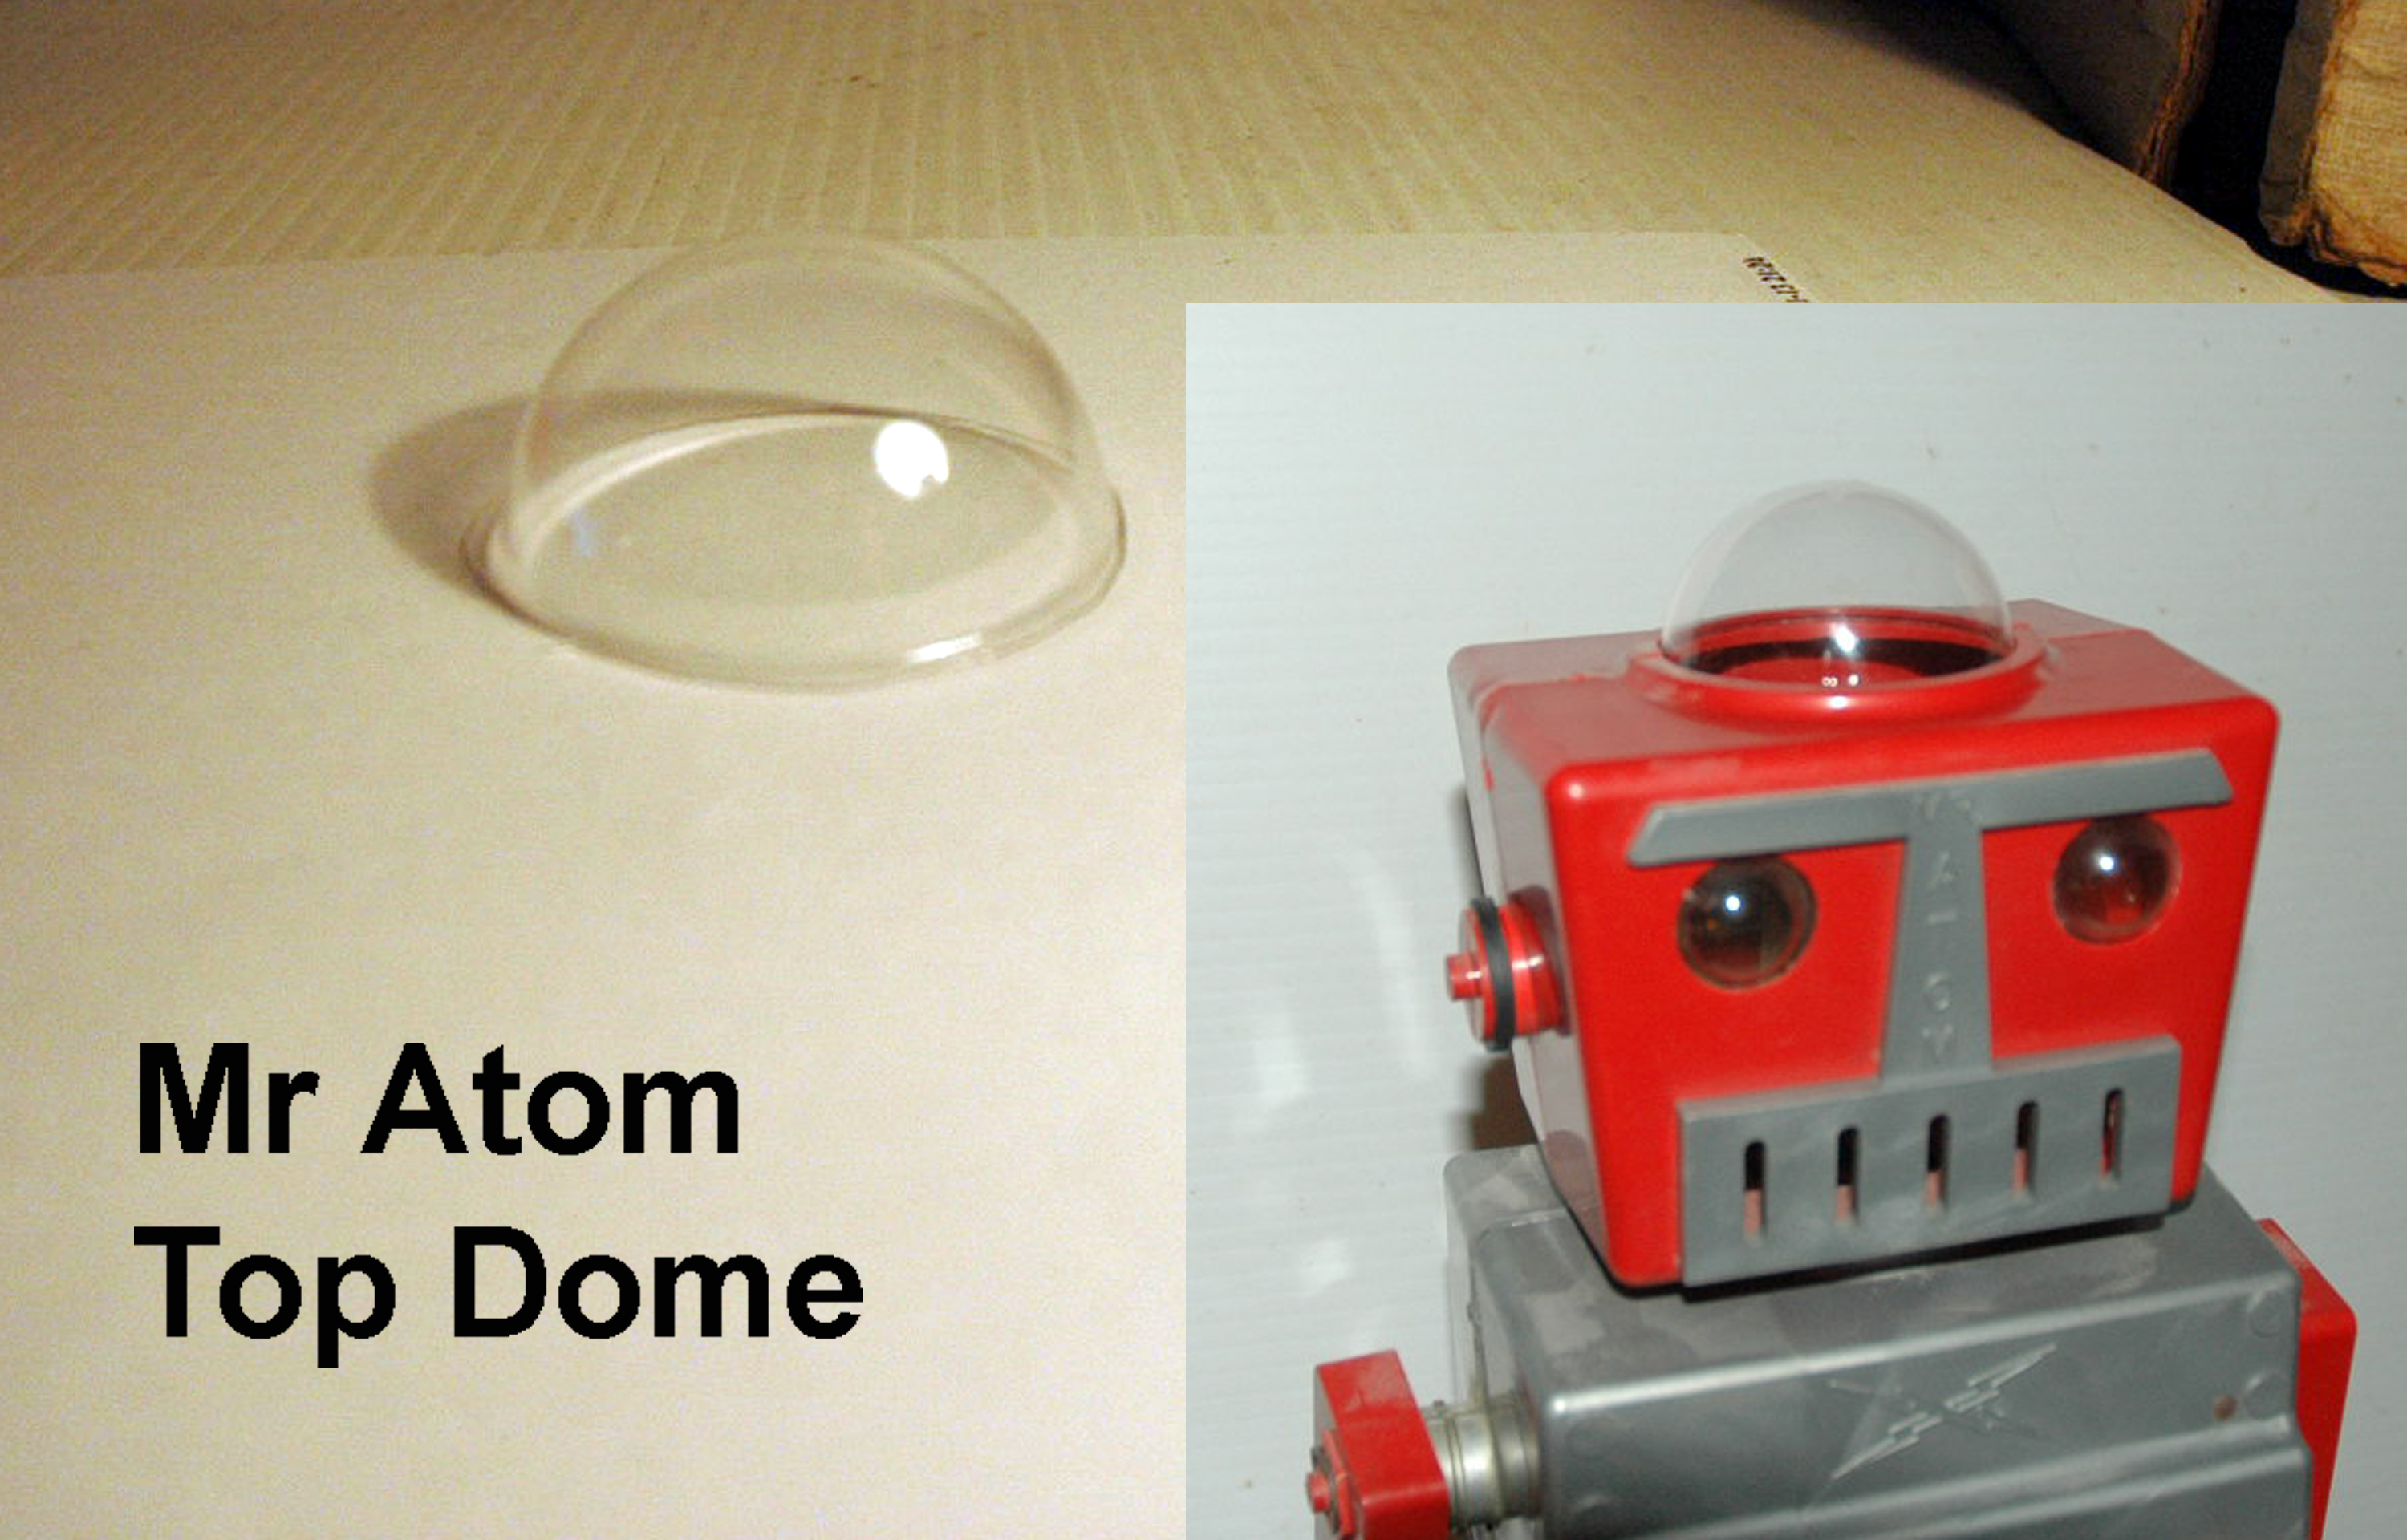 Mr Atom Robot DOME